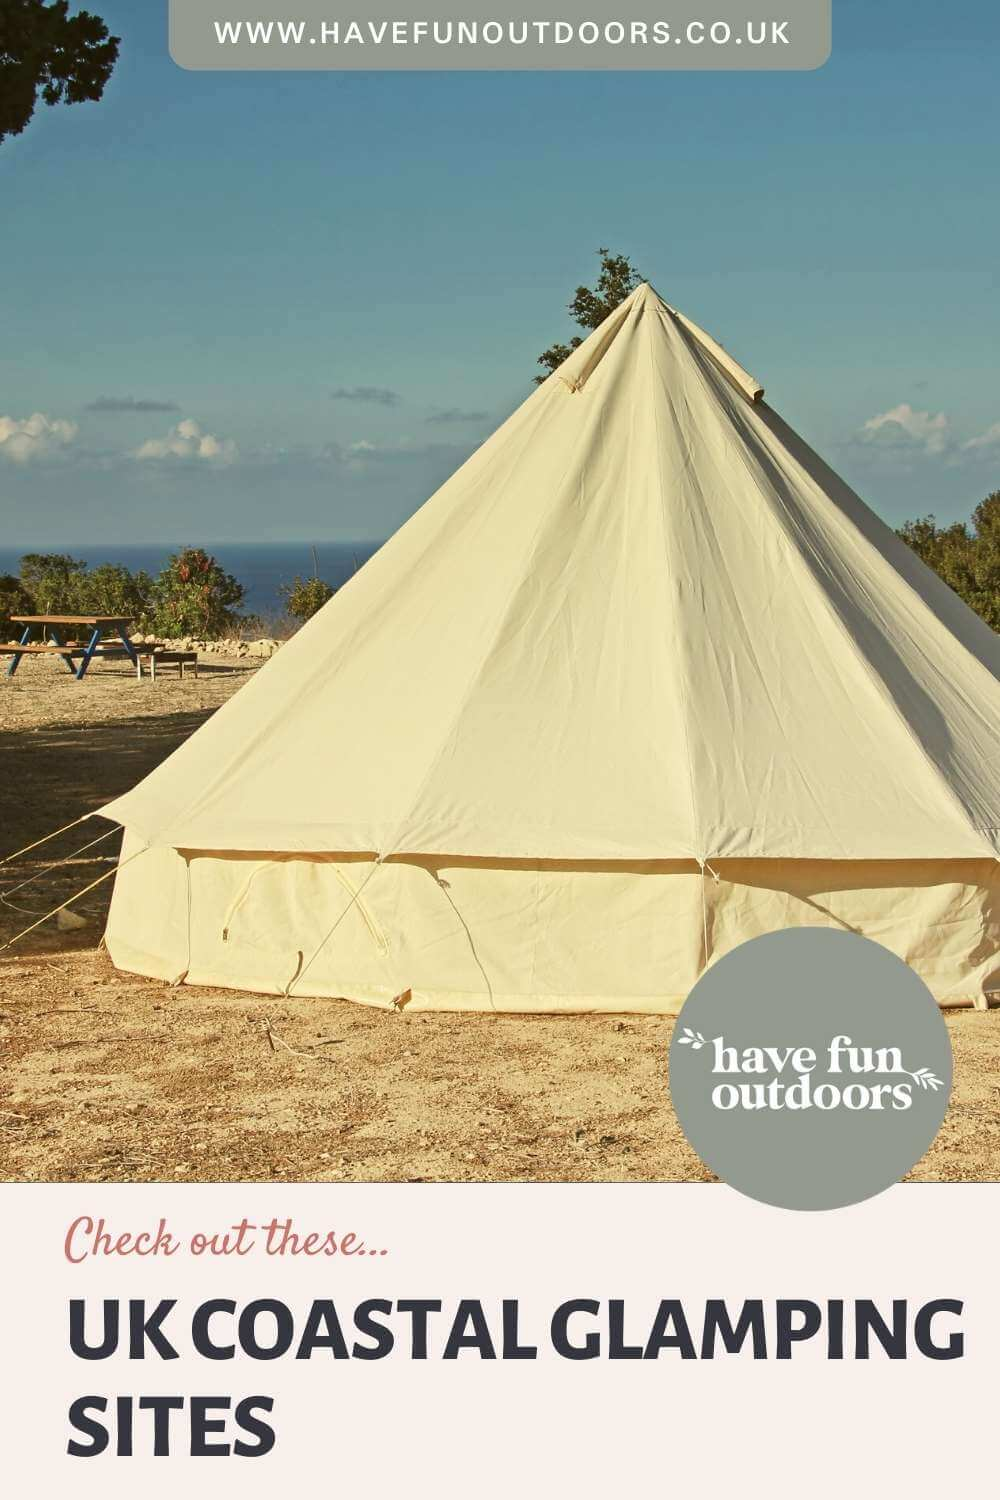 Glamping By The Sea, Best Coastal Glamping Sites In The UK